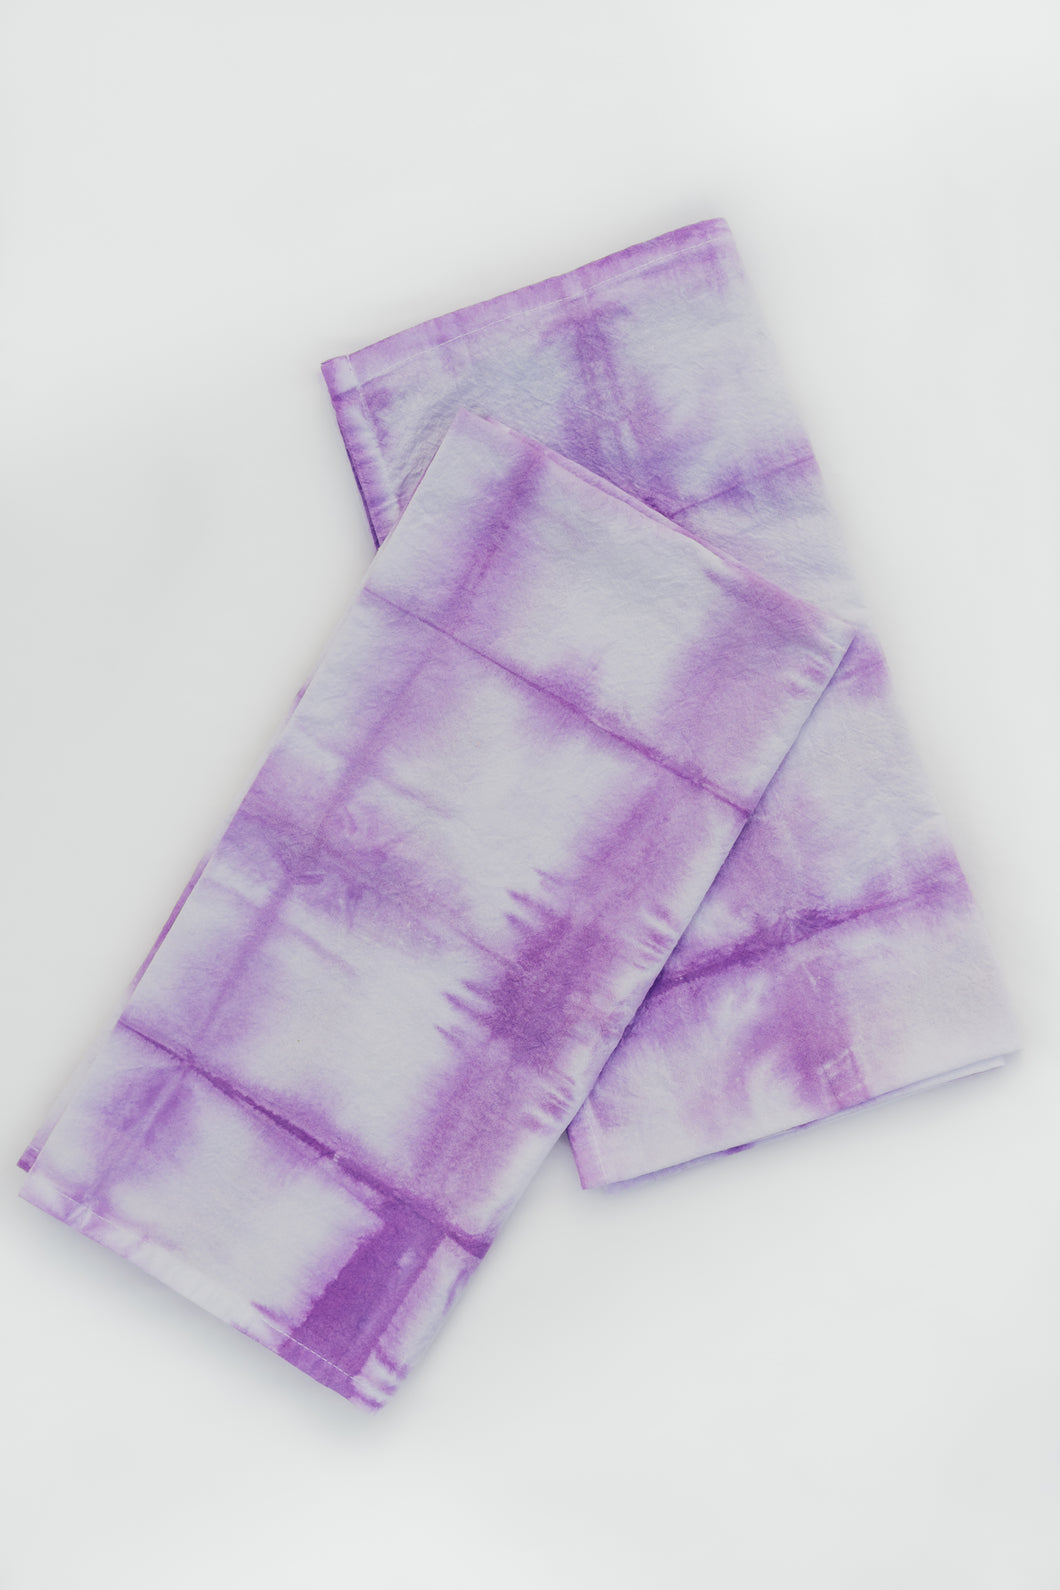 PURPLE SHIBORI DISH TOWEL SET OF 2